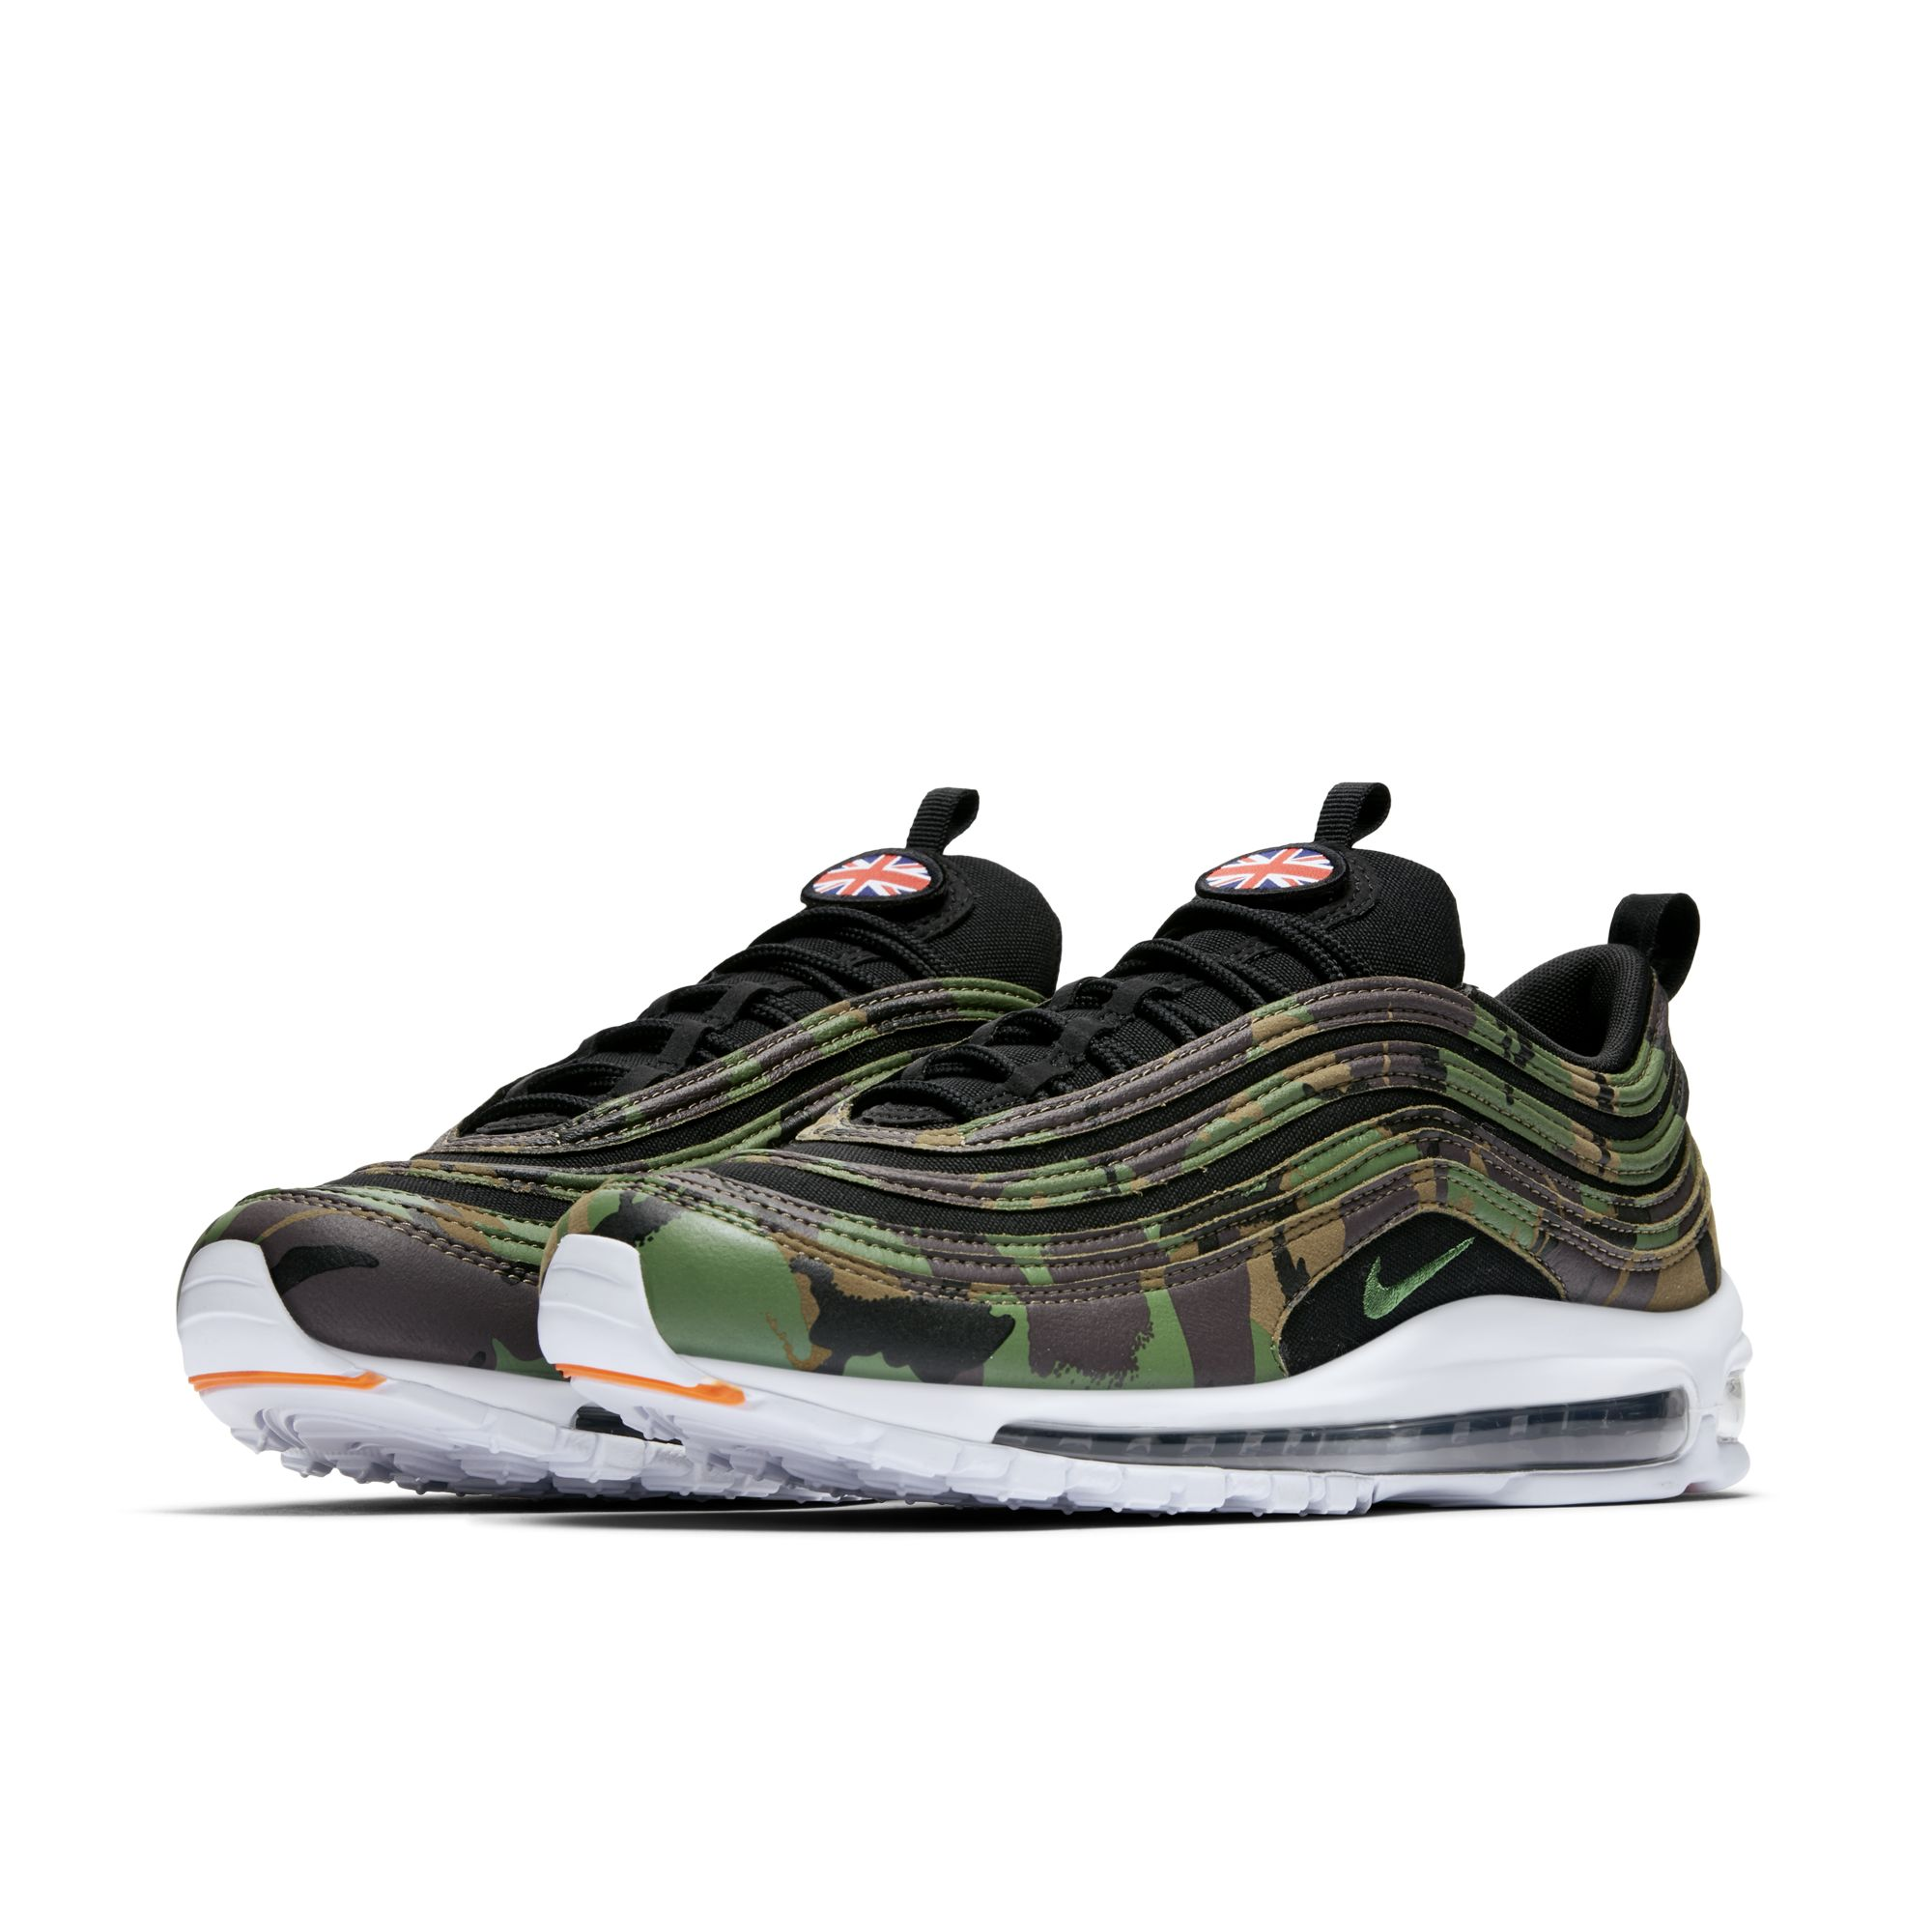 big sale 5405e 921e7 The Nike Air Max 97 Premium Camo Pack is for France, Germany ...